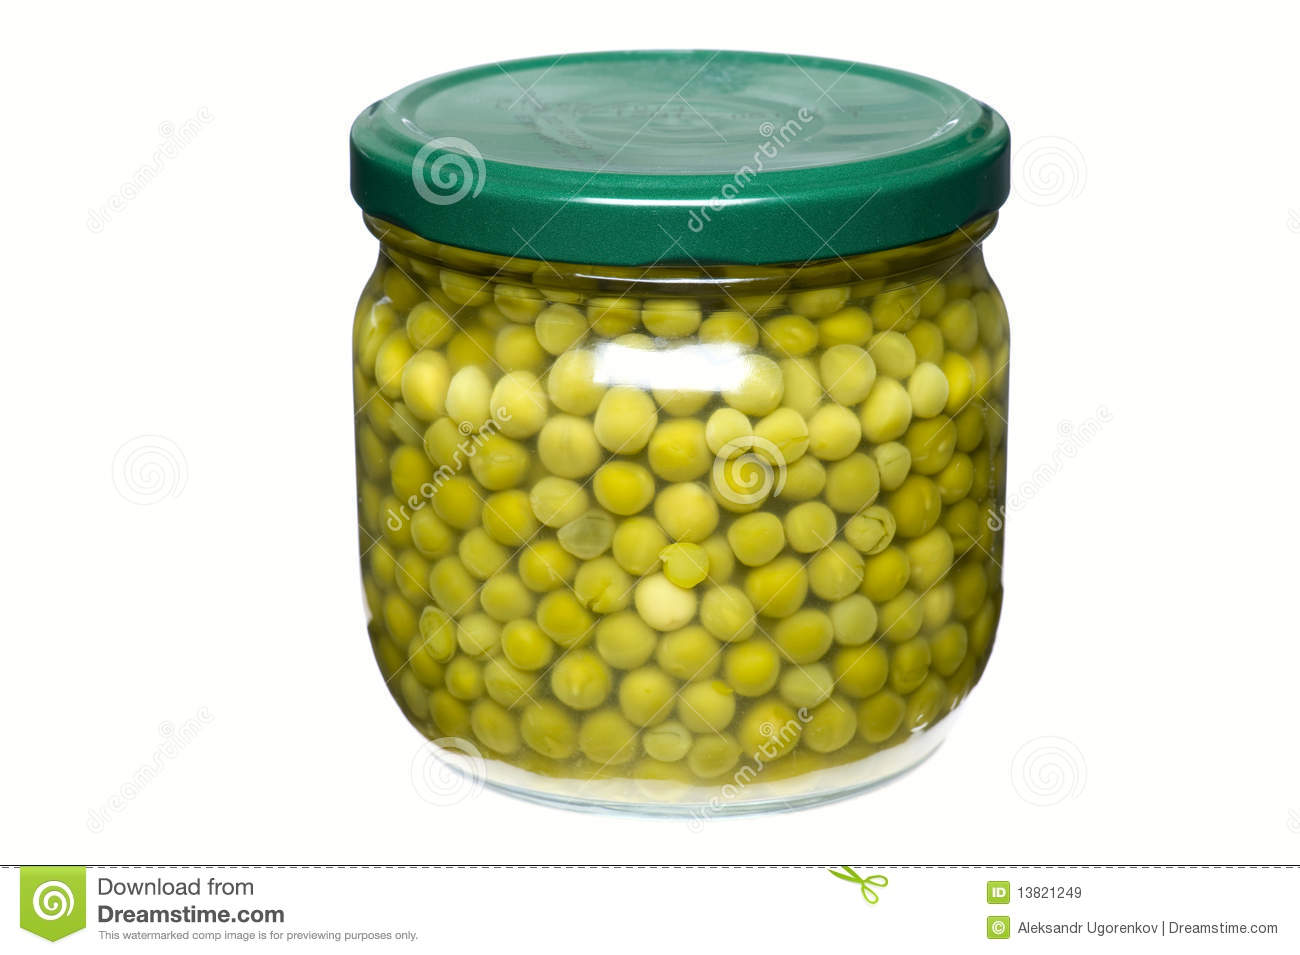 Pot with green pea